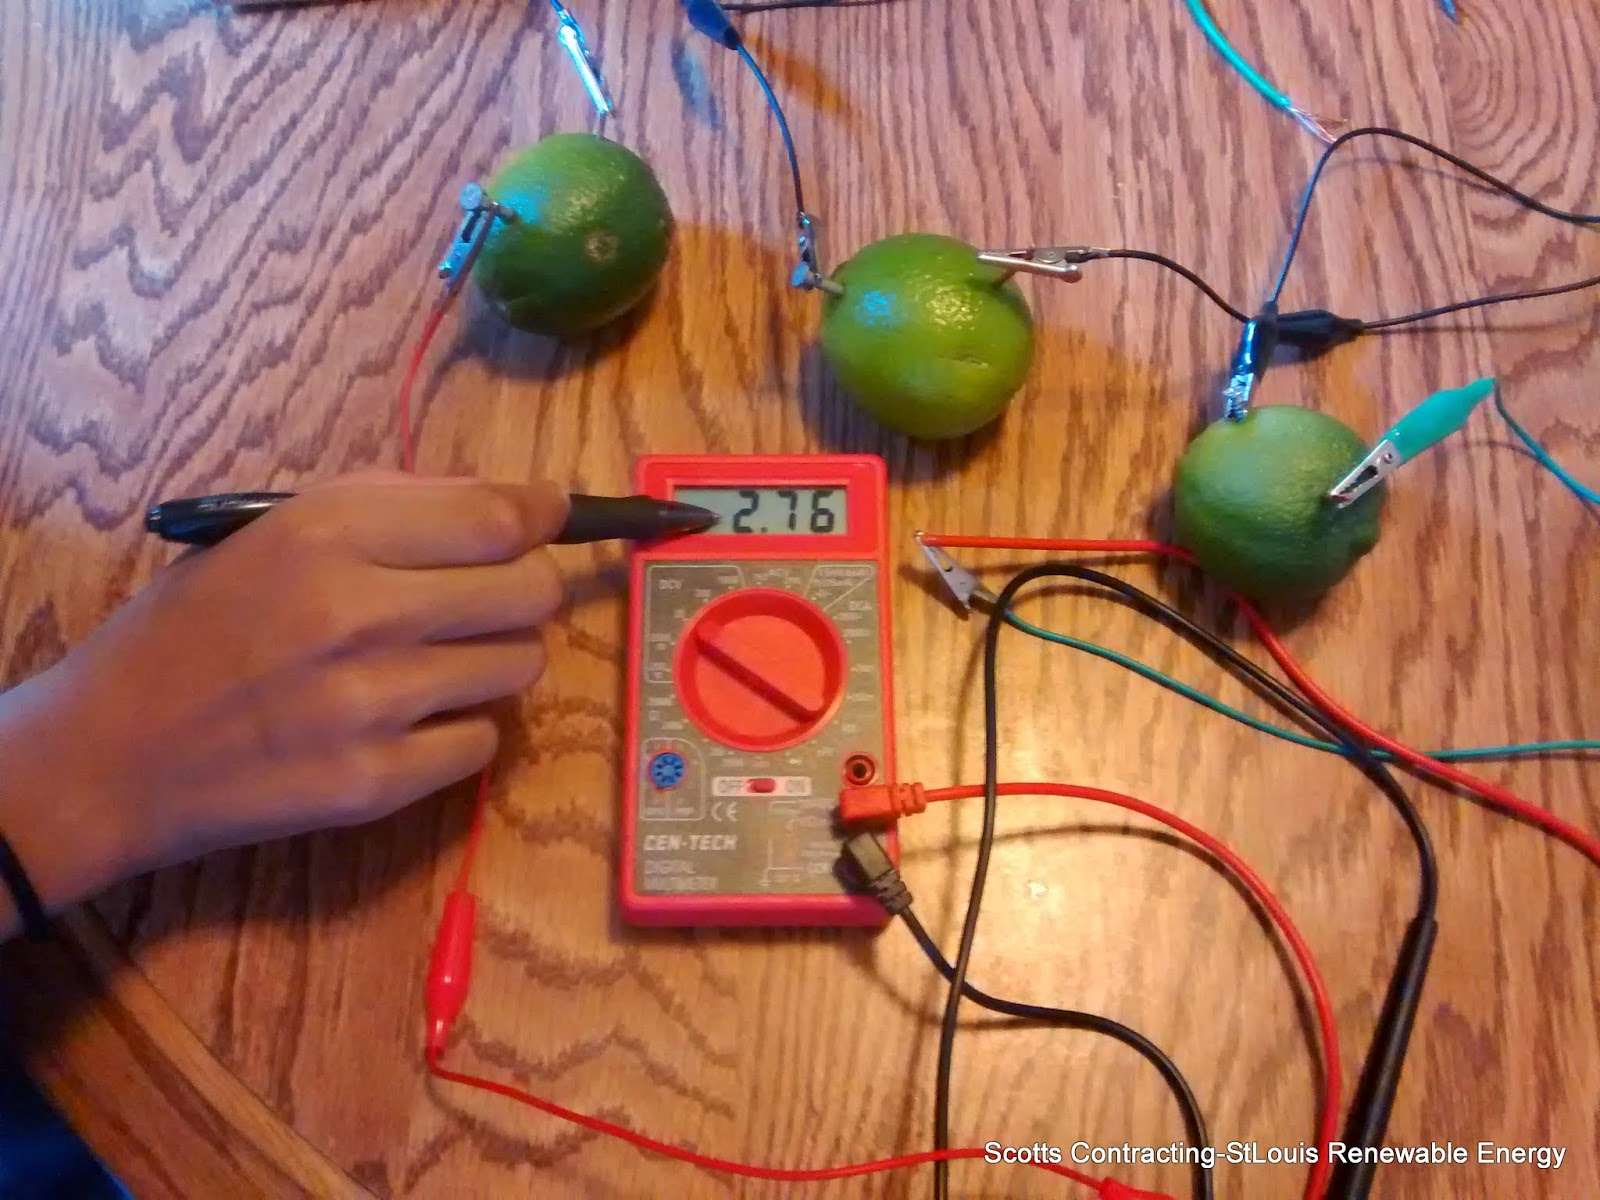 Stlouis Renewable Energy 4th Grade Science Project Worksheets Electric Circuit Measuring Fruit Battery Electrical Current With Multi Meter